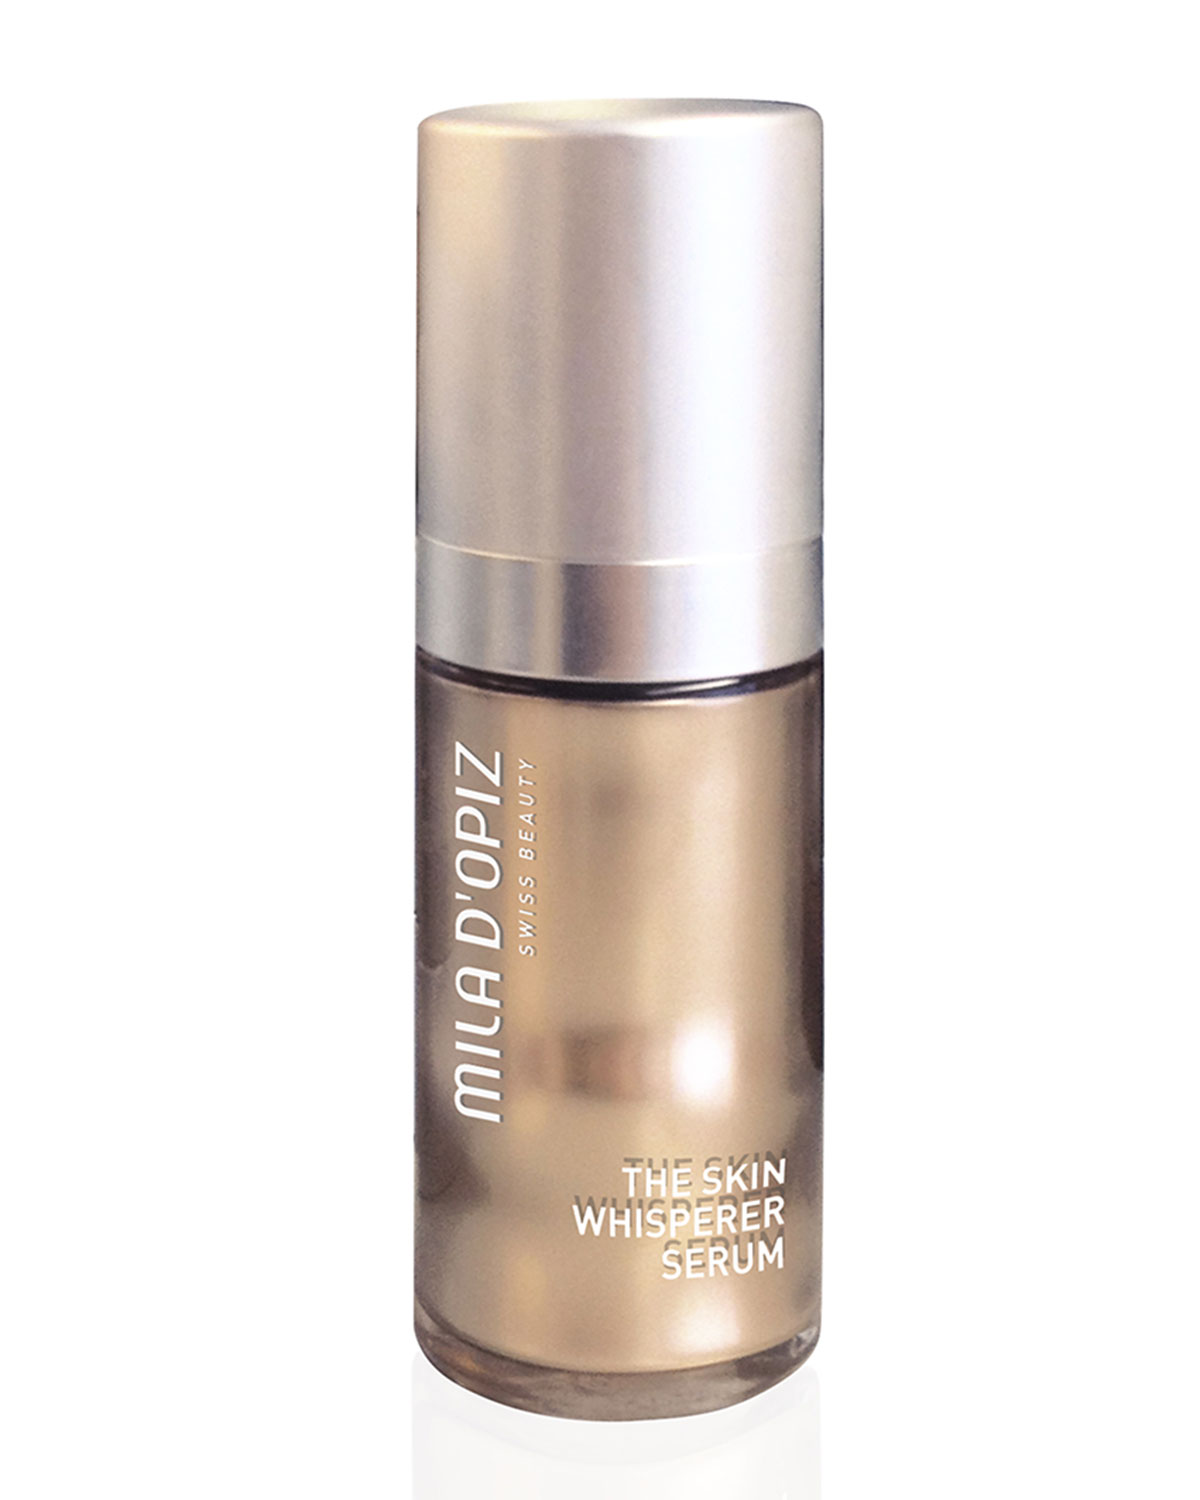 Mila d'Opiz 1.0 oz. Skin Whisperer Serum